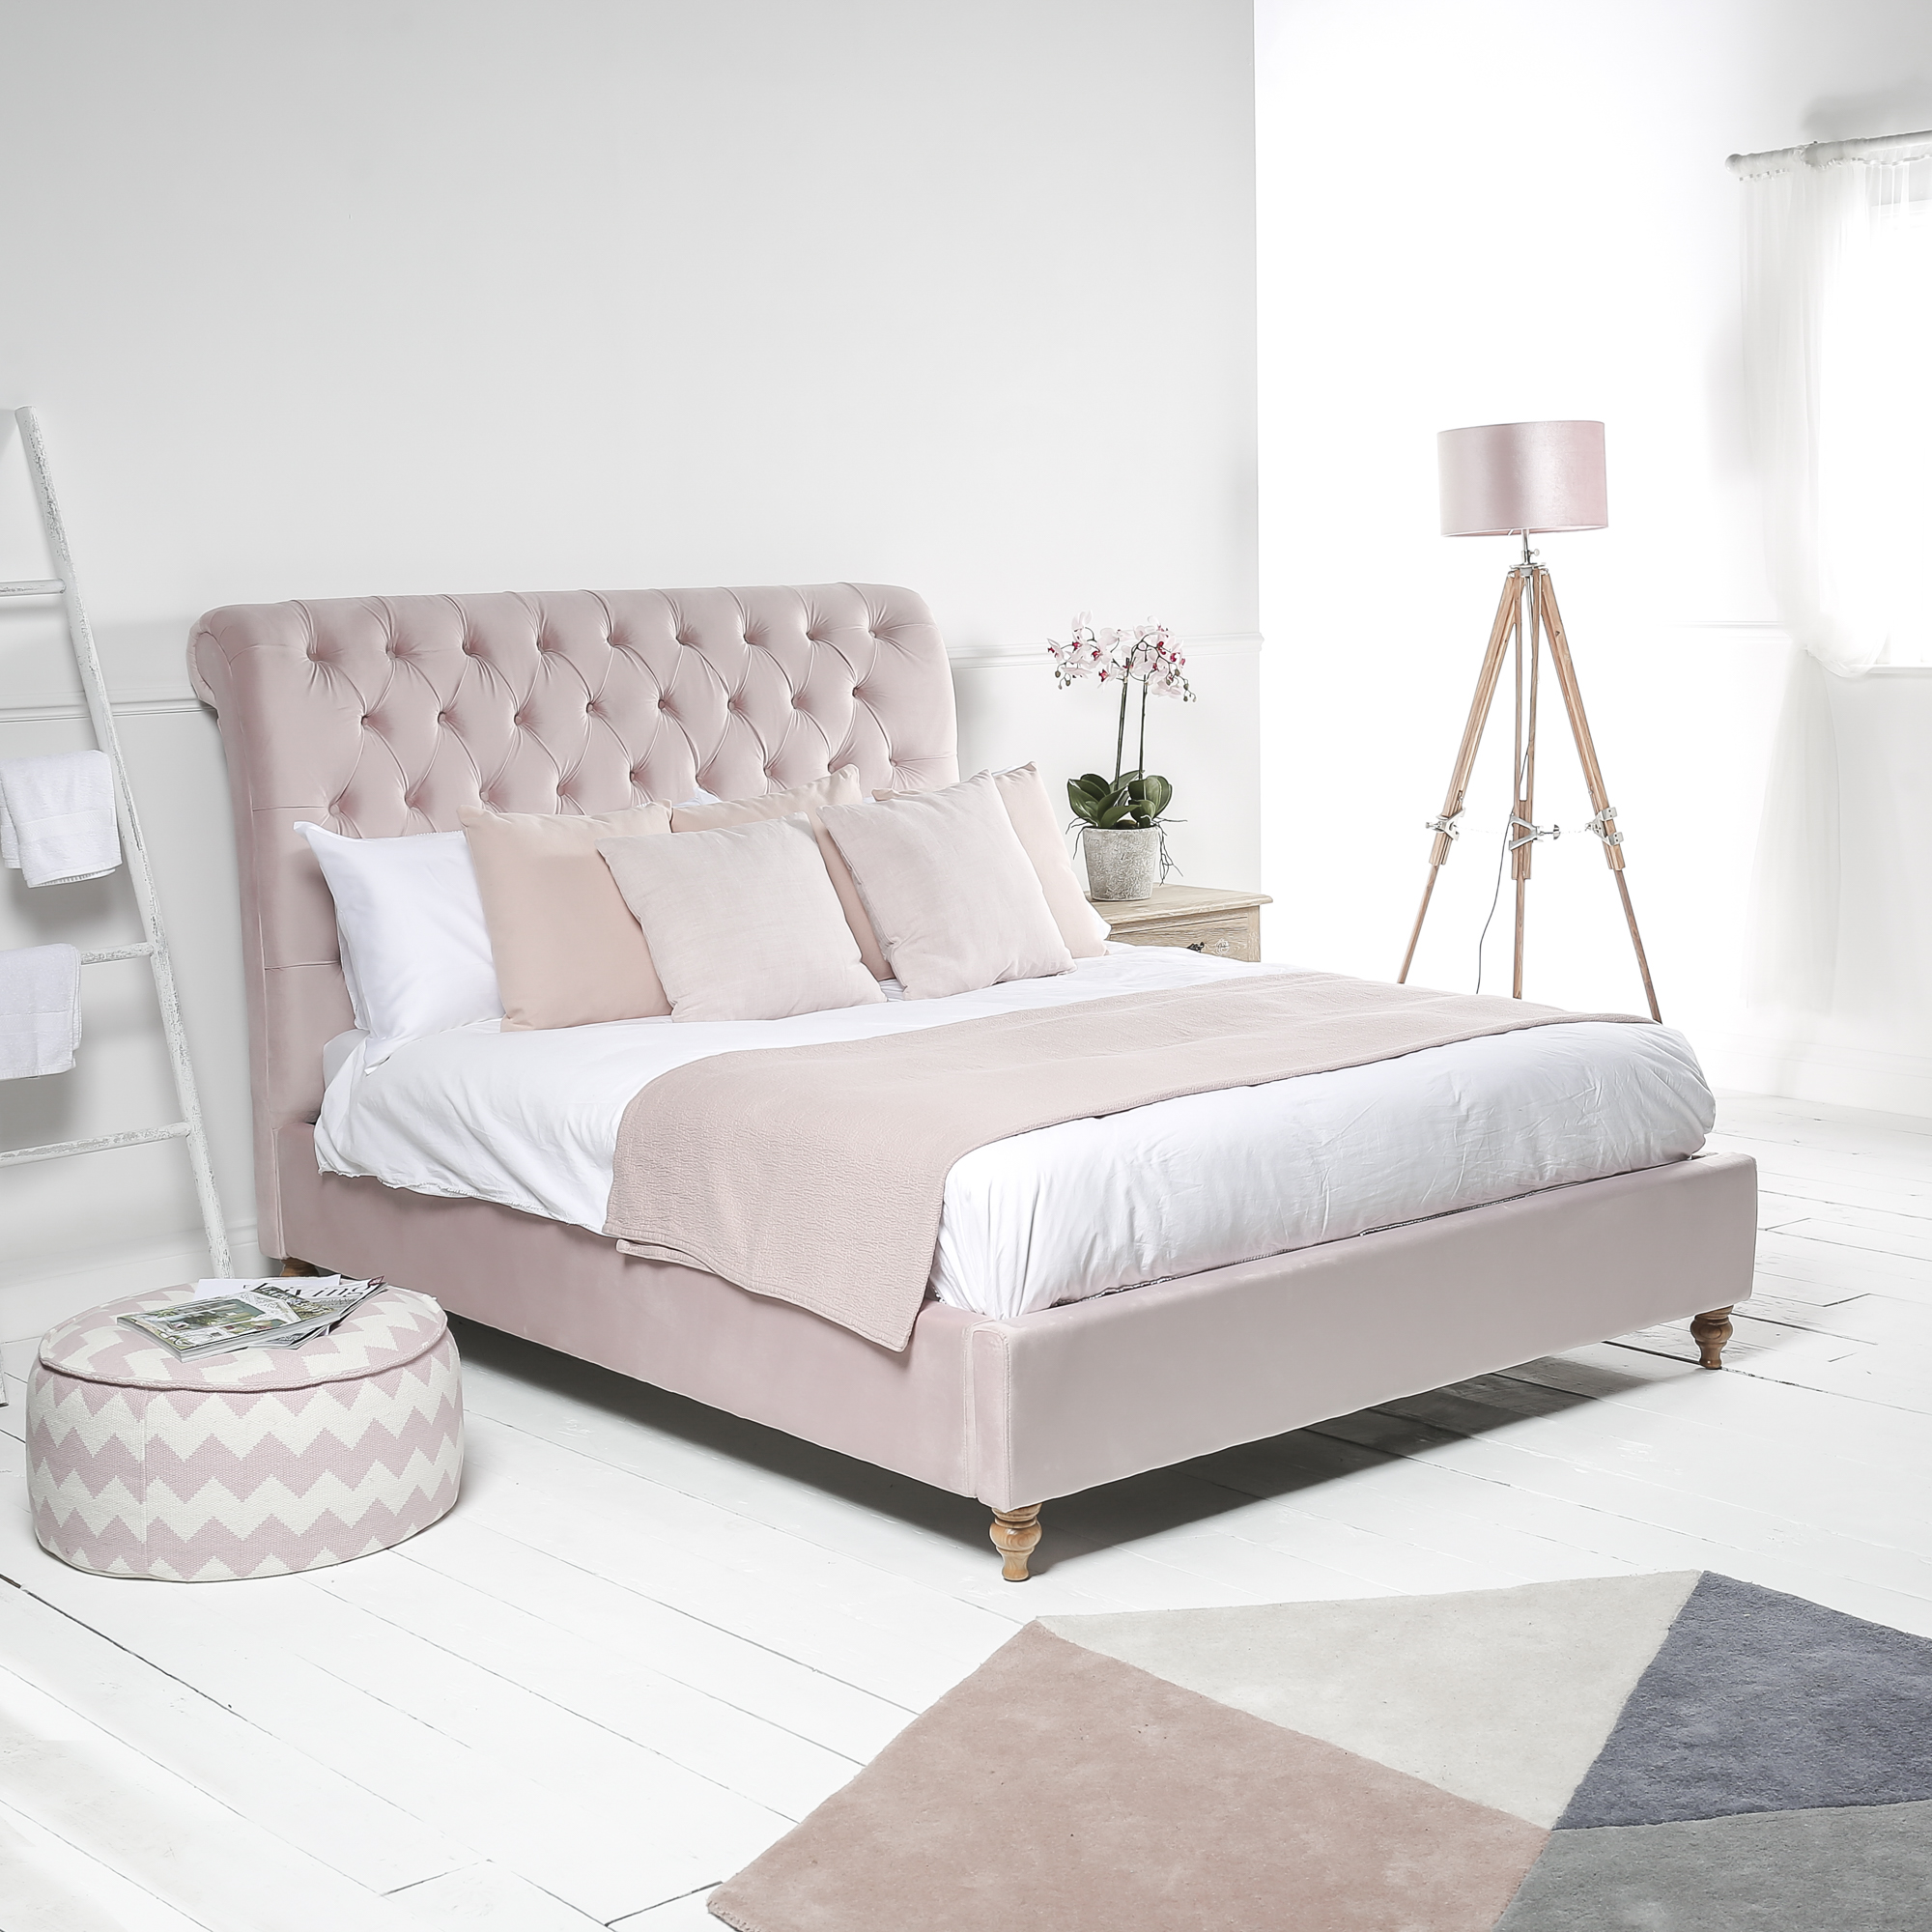 Luxury Chesterfield King Size Bed in Pink Velvet (5ft)